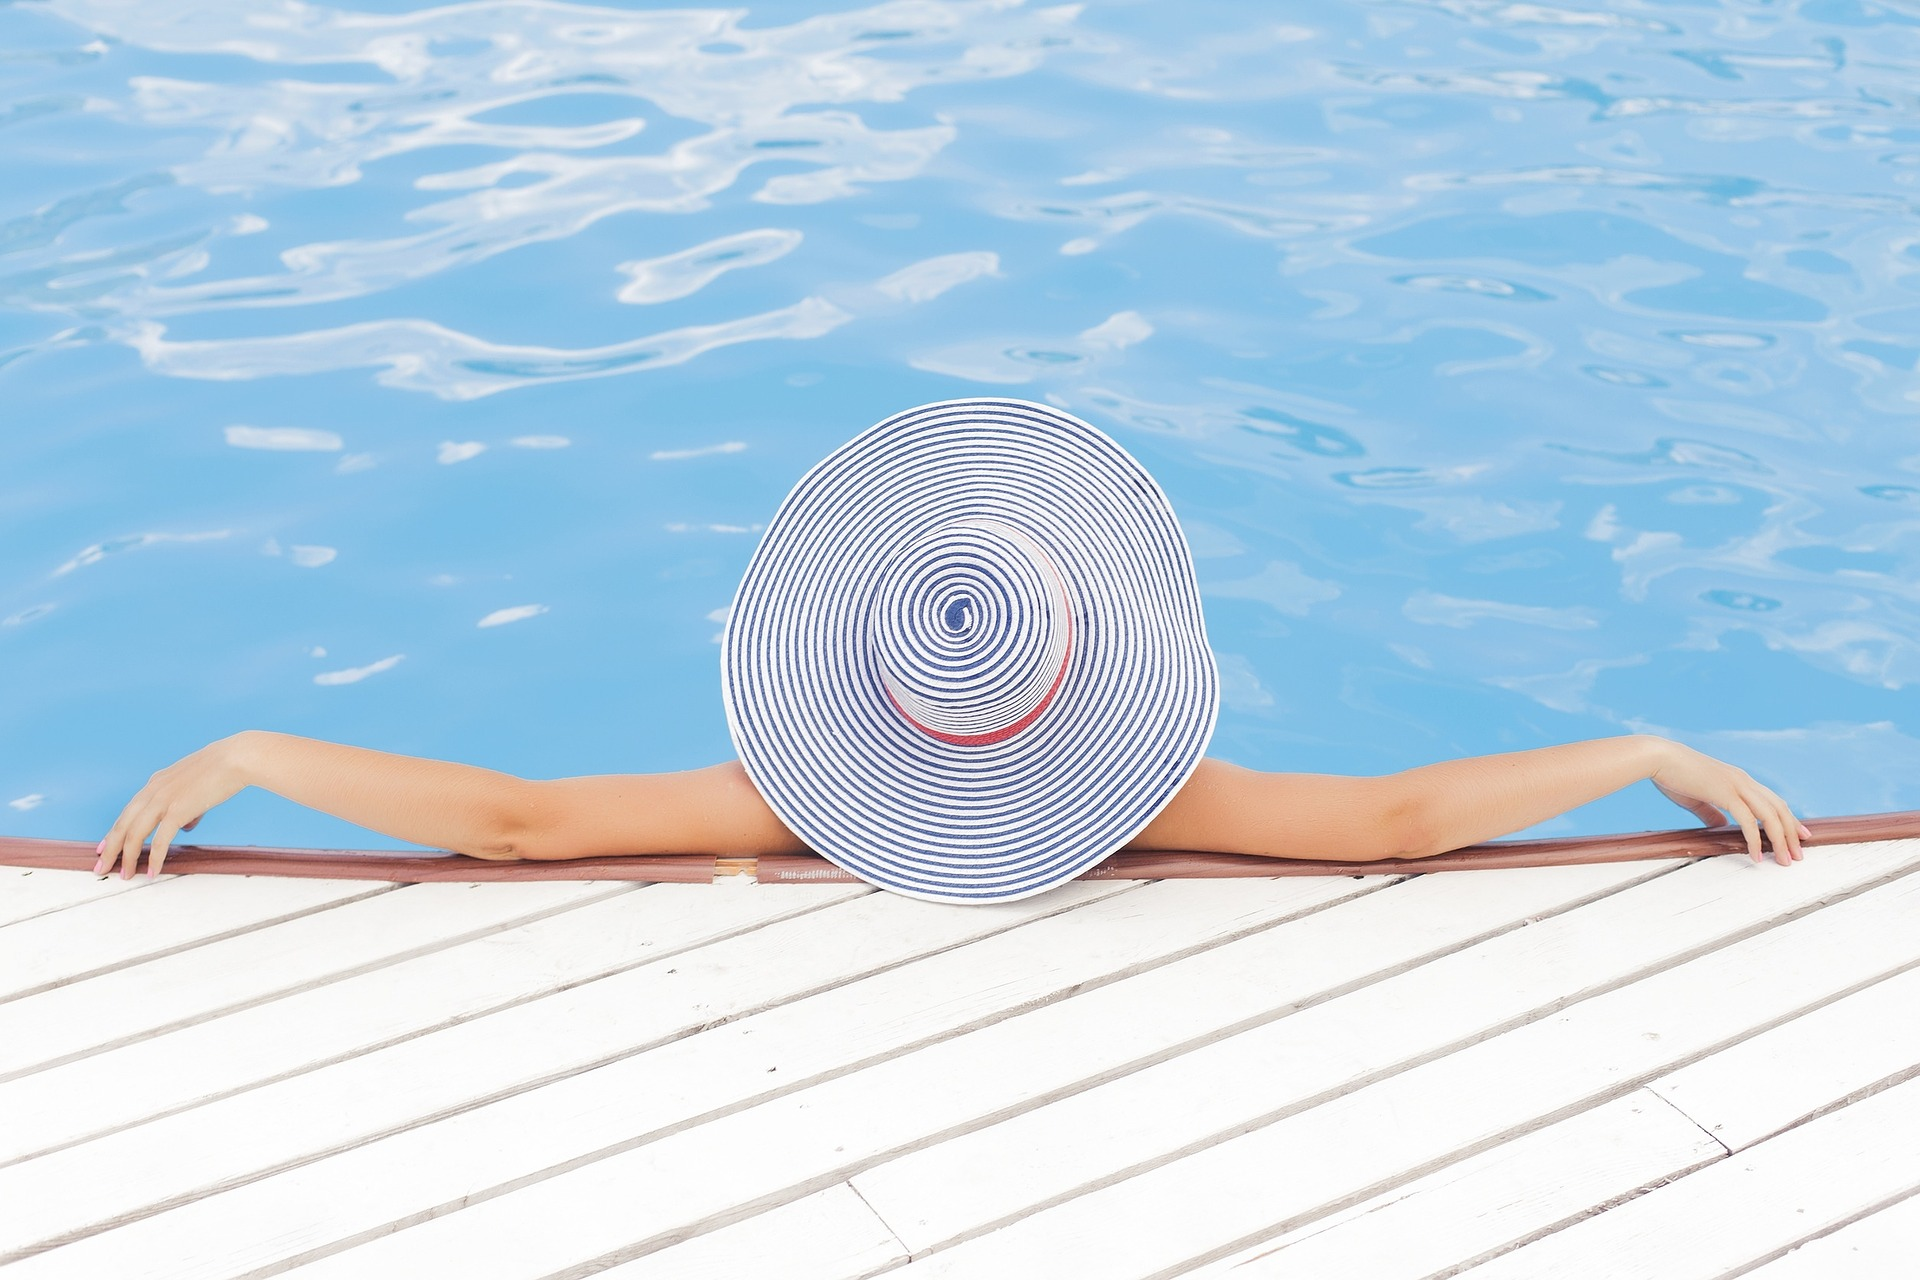 woman lounging in a pool with a sun hat